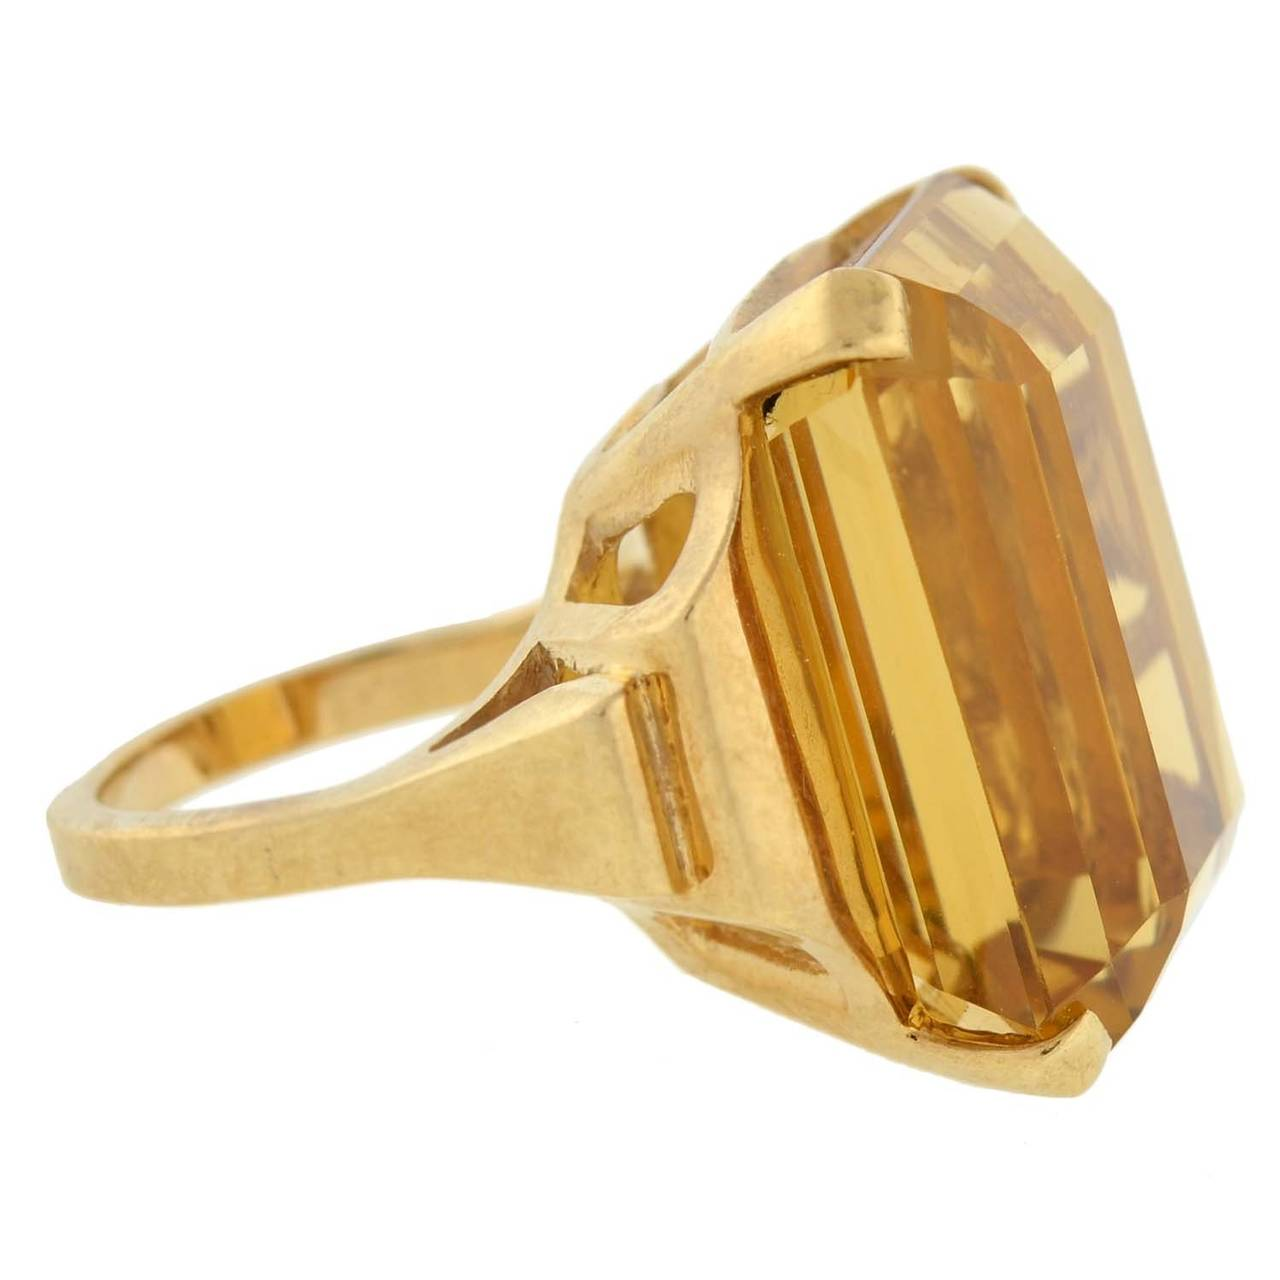 A magnificent citrine ring from the Retro (ca1940) era! This incredibly fabulous piece is made of 14kt yellow gold and holds a large faceted citrine stone at its center. The large stone, which is prong set, weighs approximately 30ct and displays a